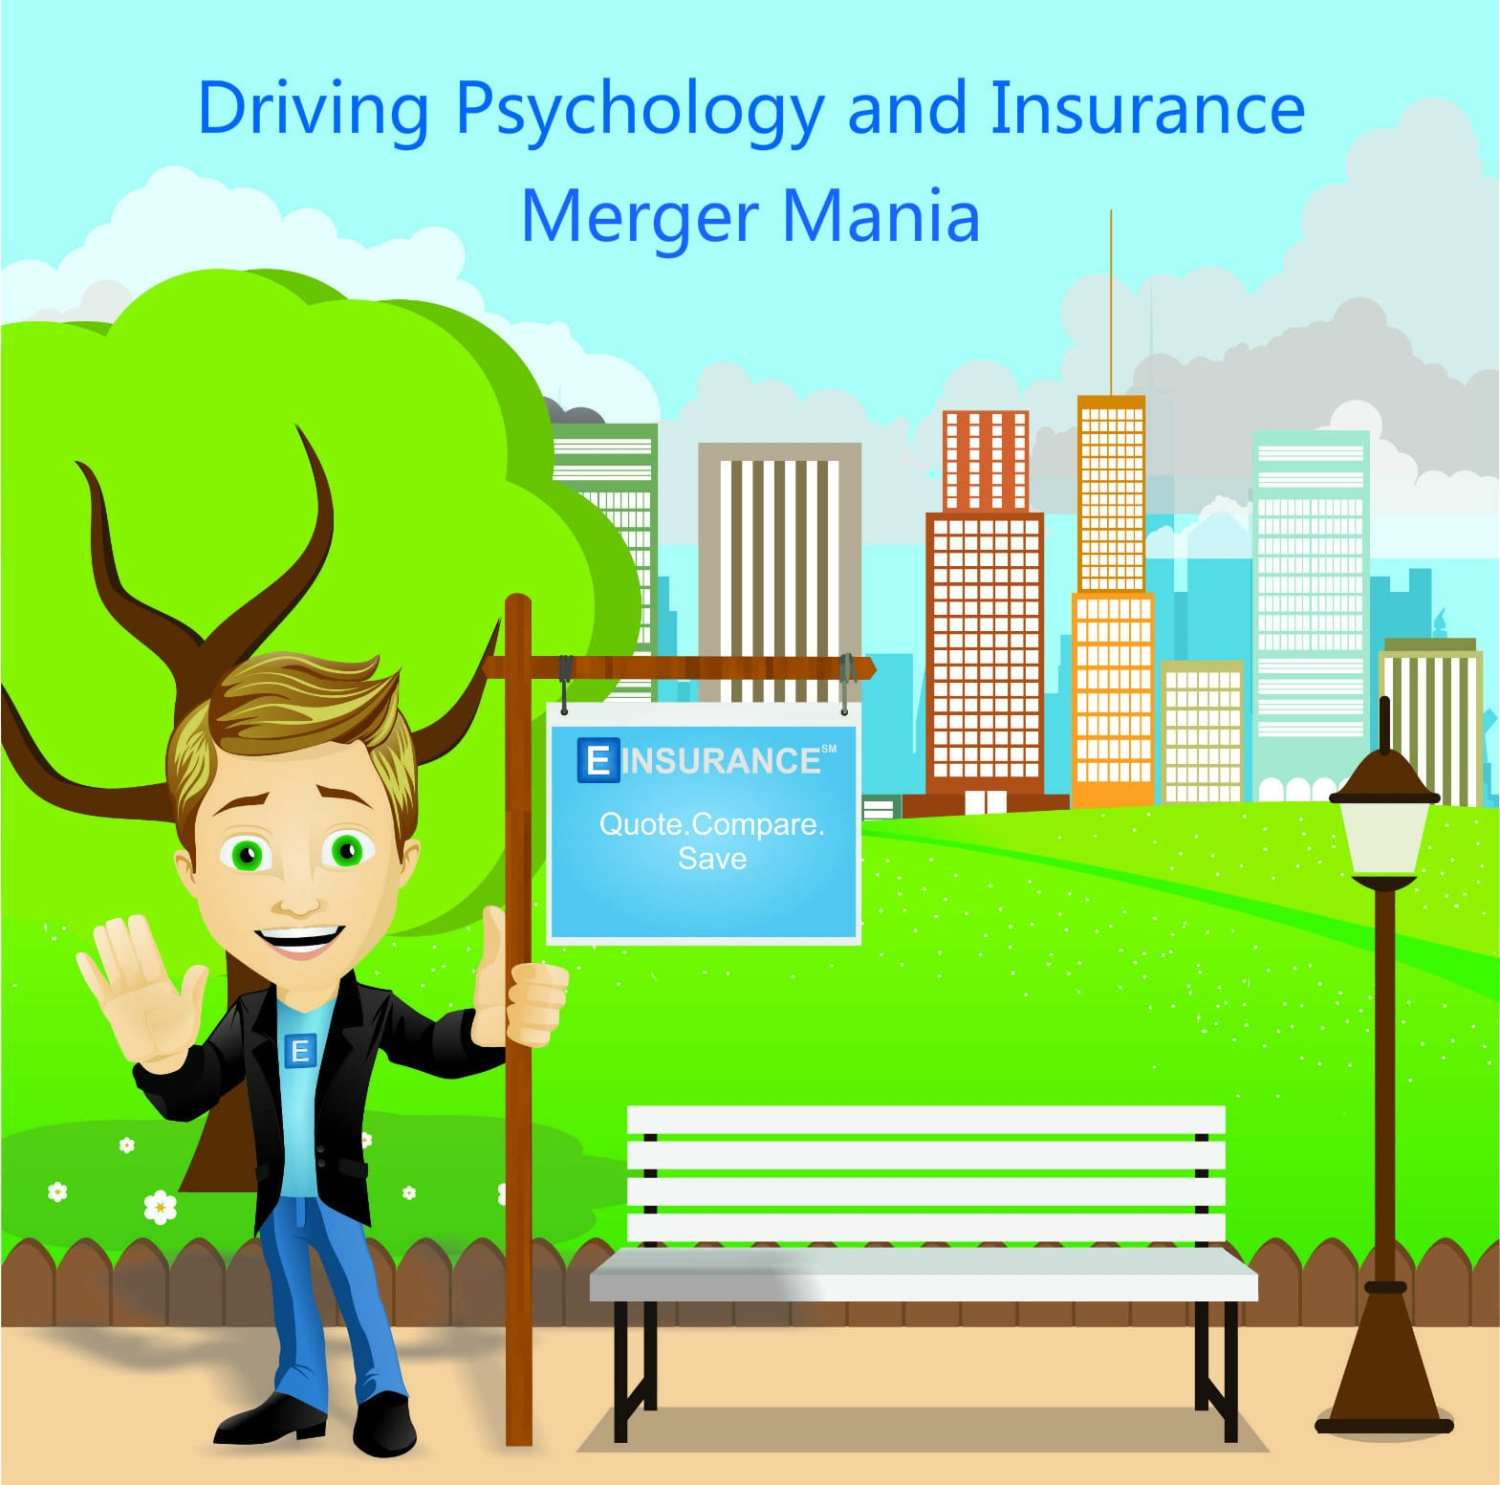 driving psychology and insurance regarding merger mania